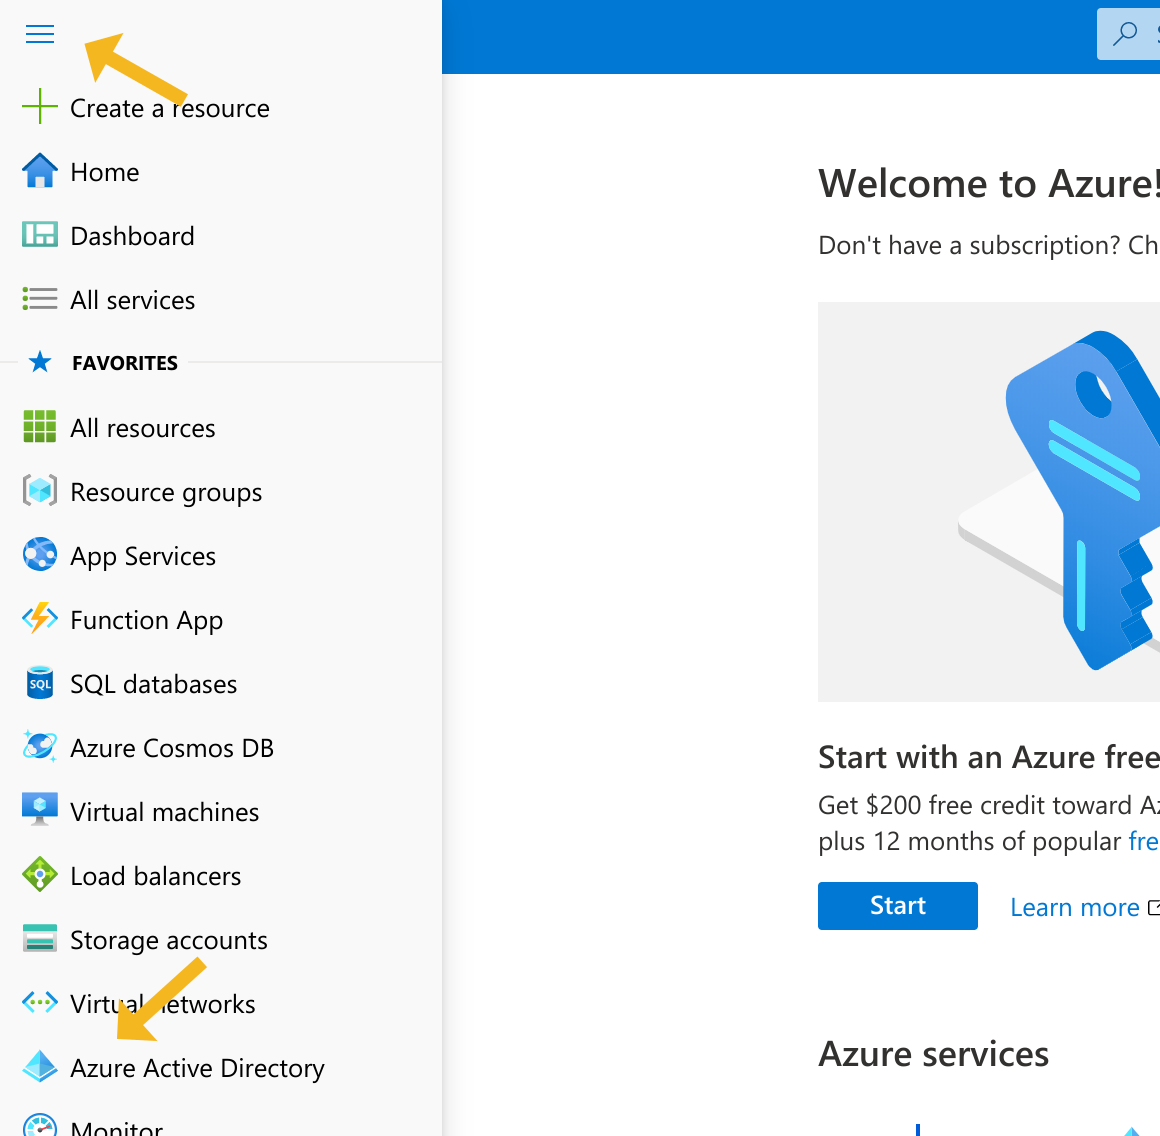 Azure portal menu and active directory